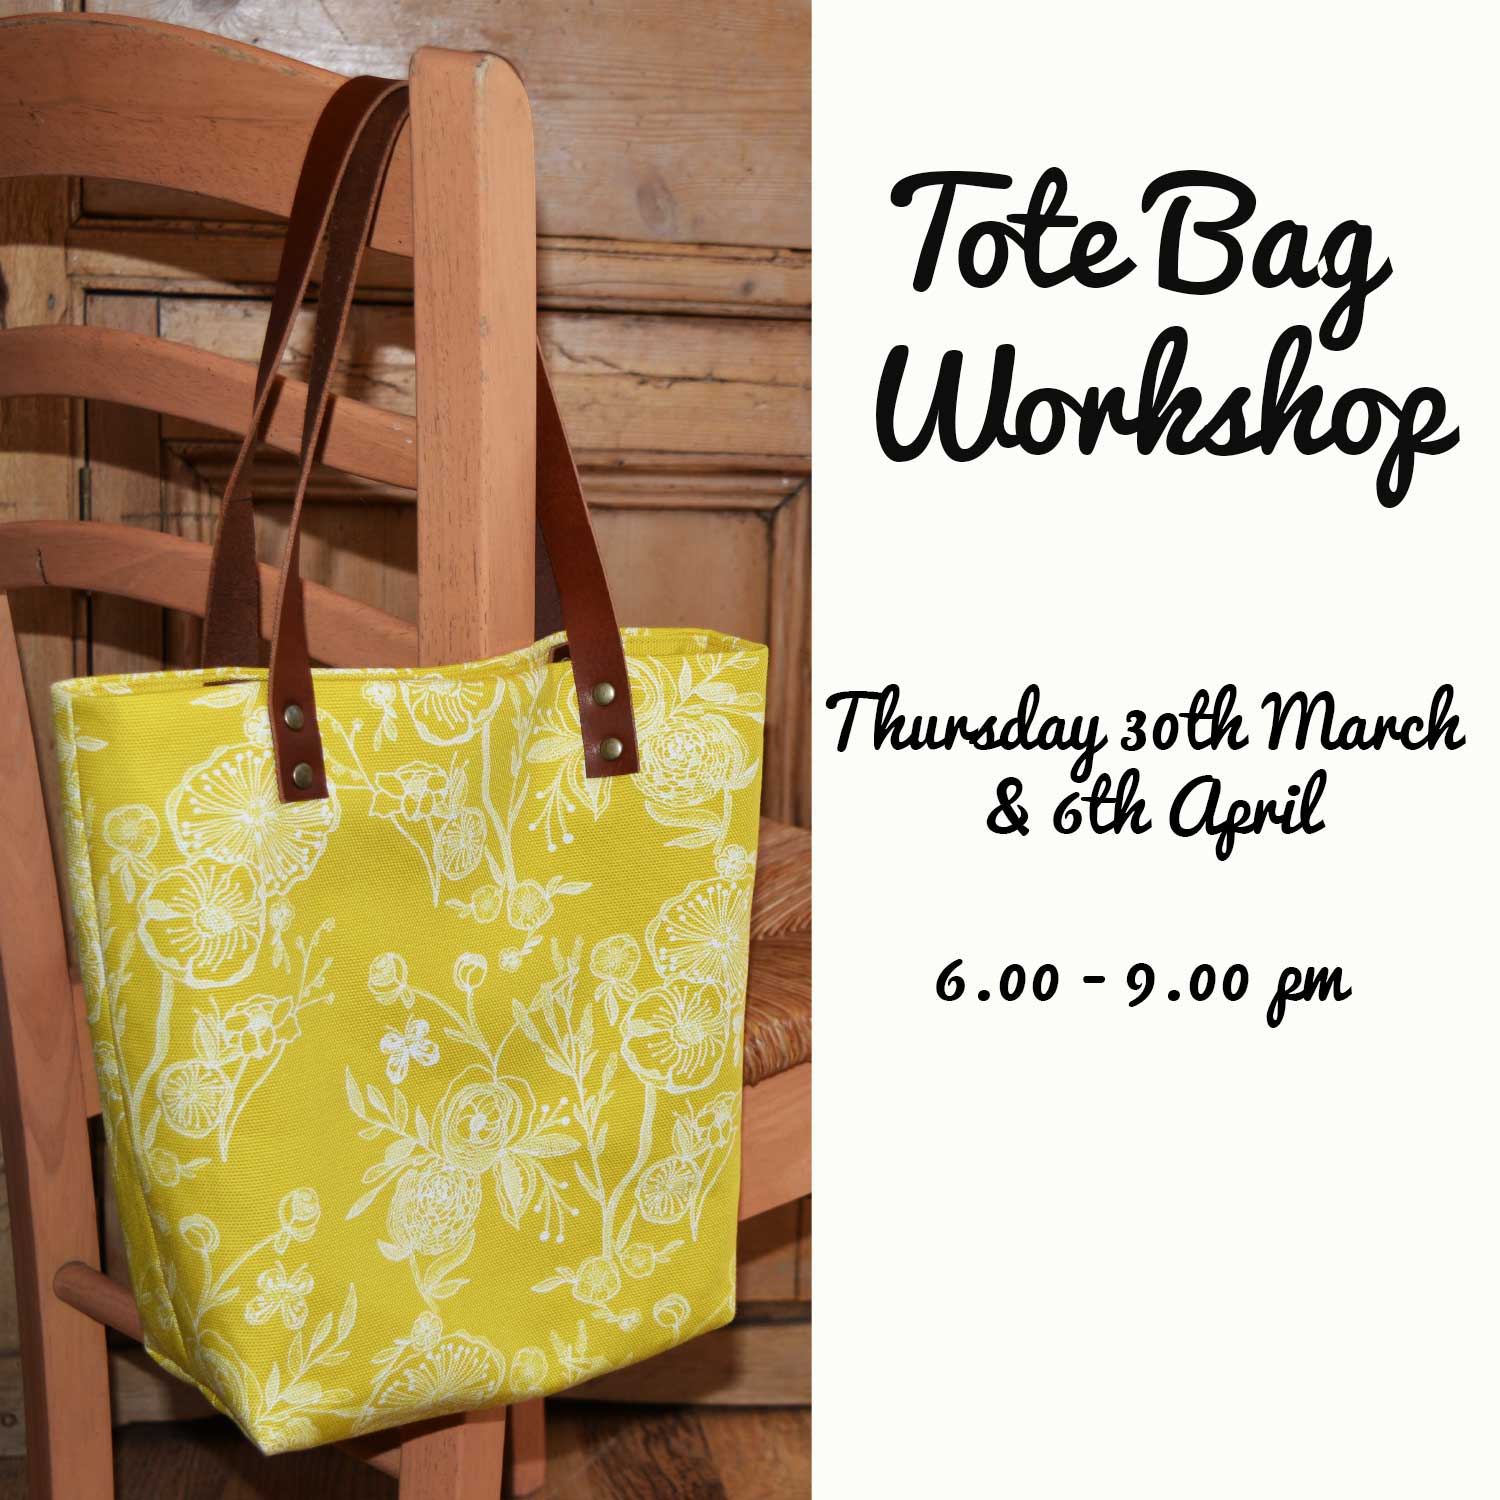 Genoa Tote Bag Workshop - Learn to Sew | Holm Sown